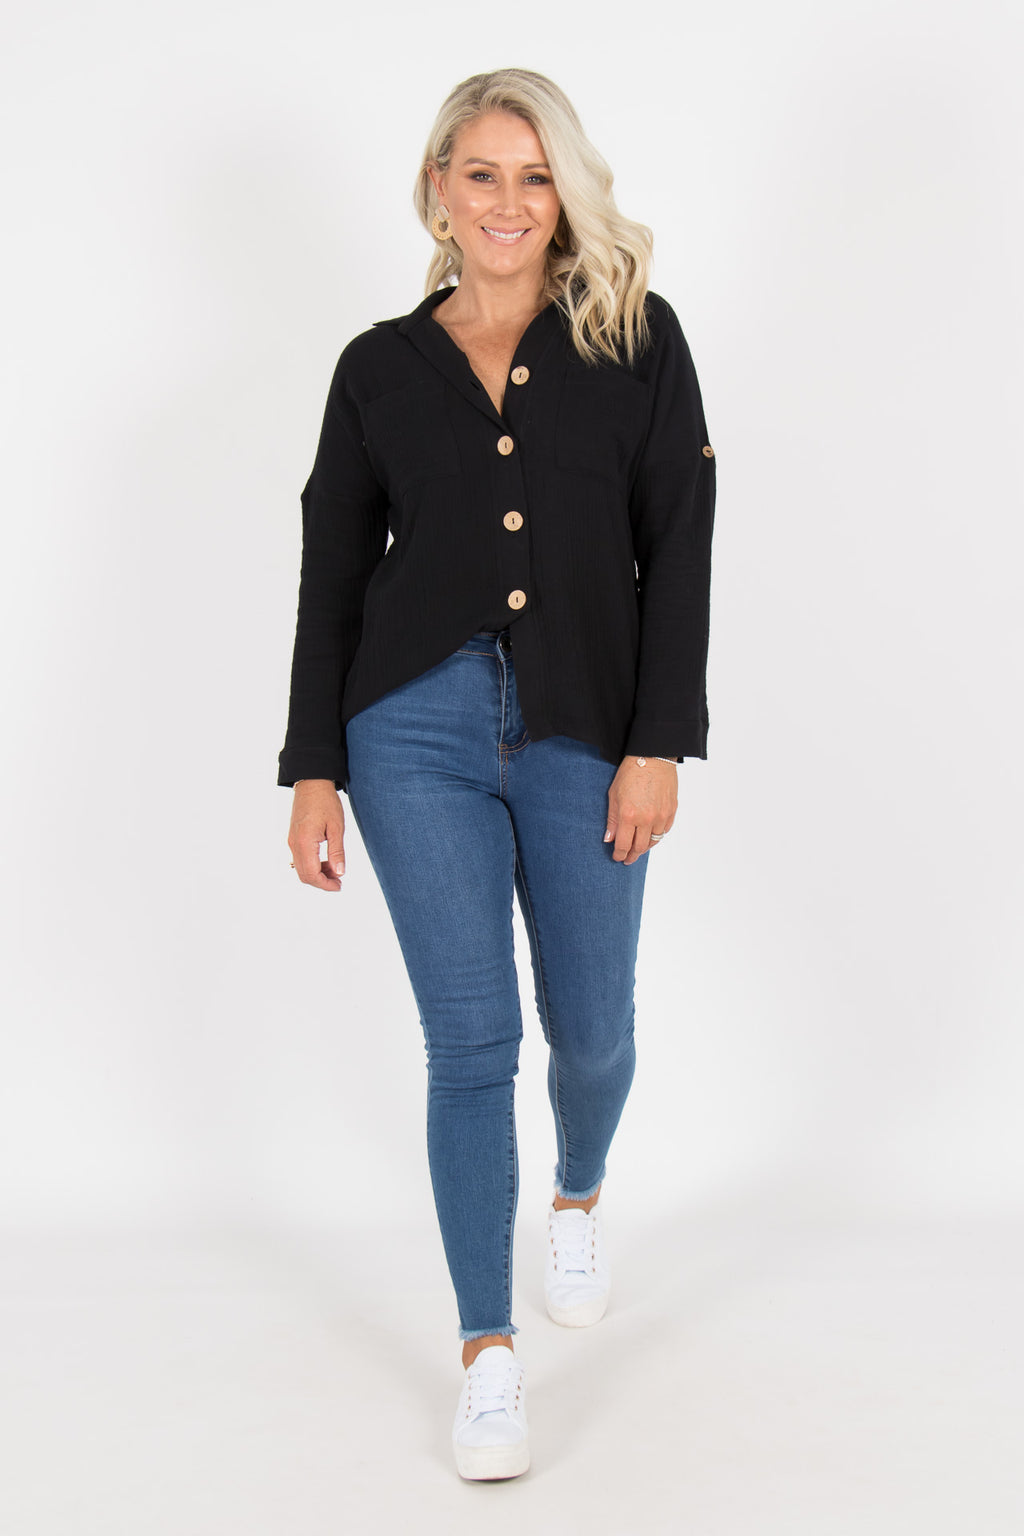 Cremorne Shirt in Black